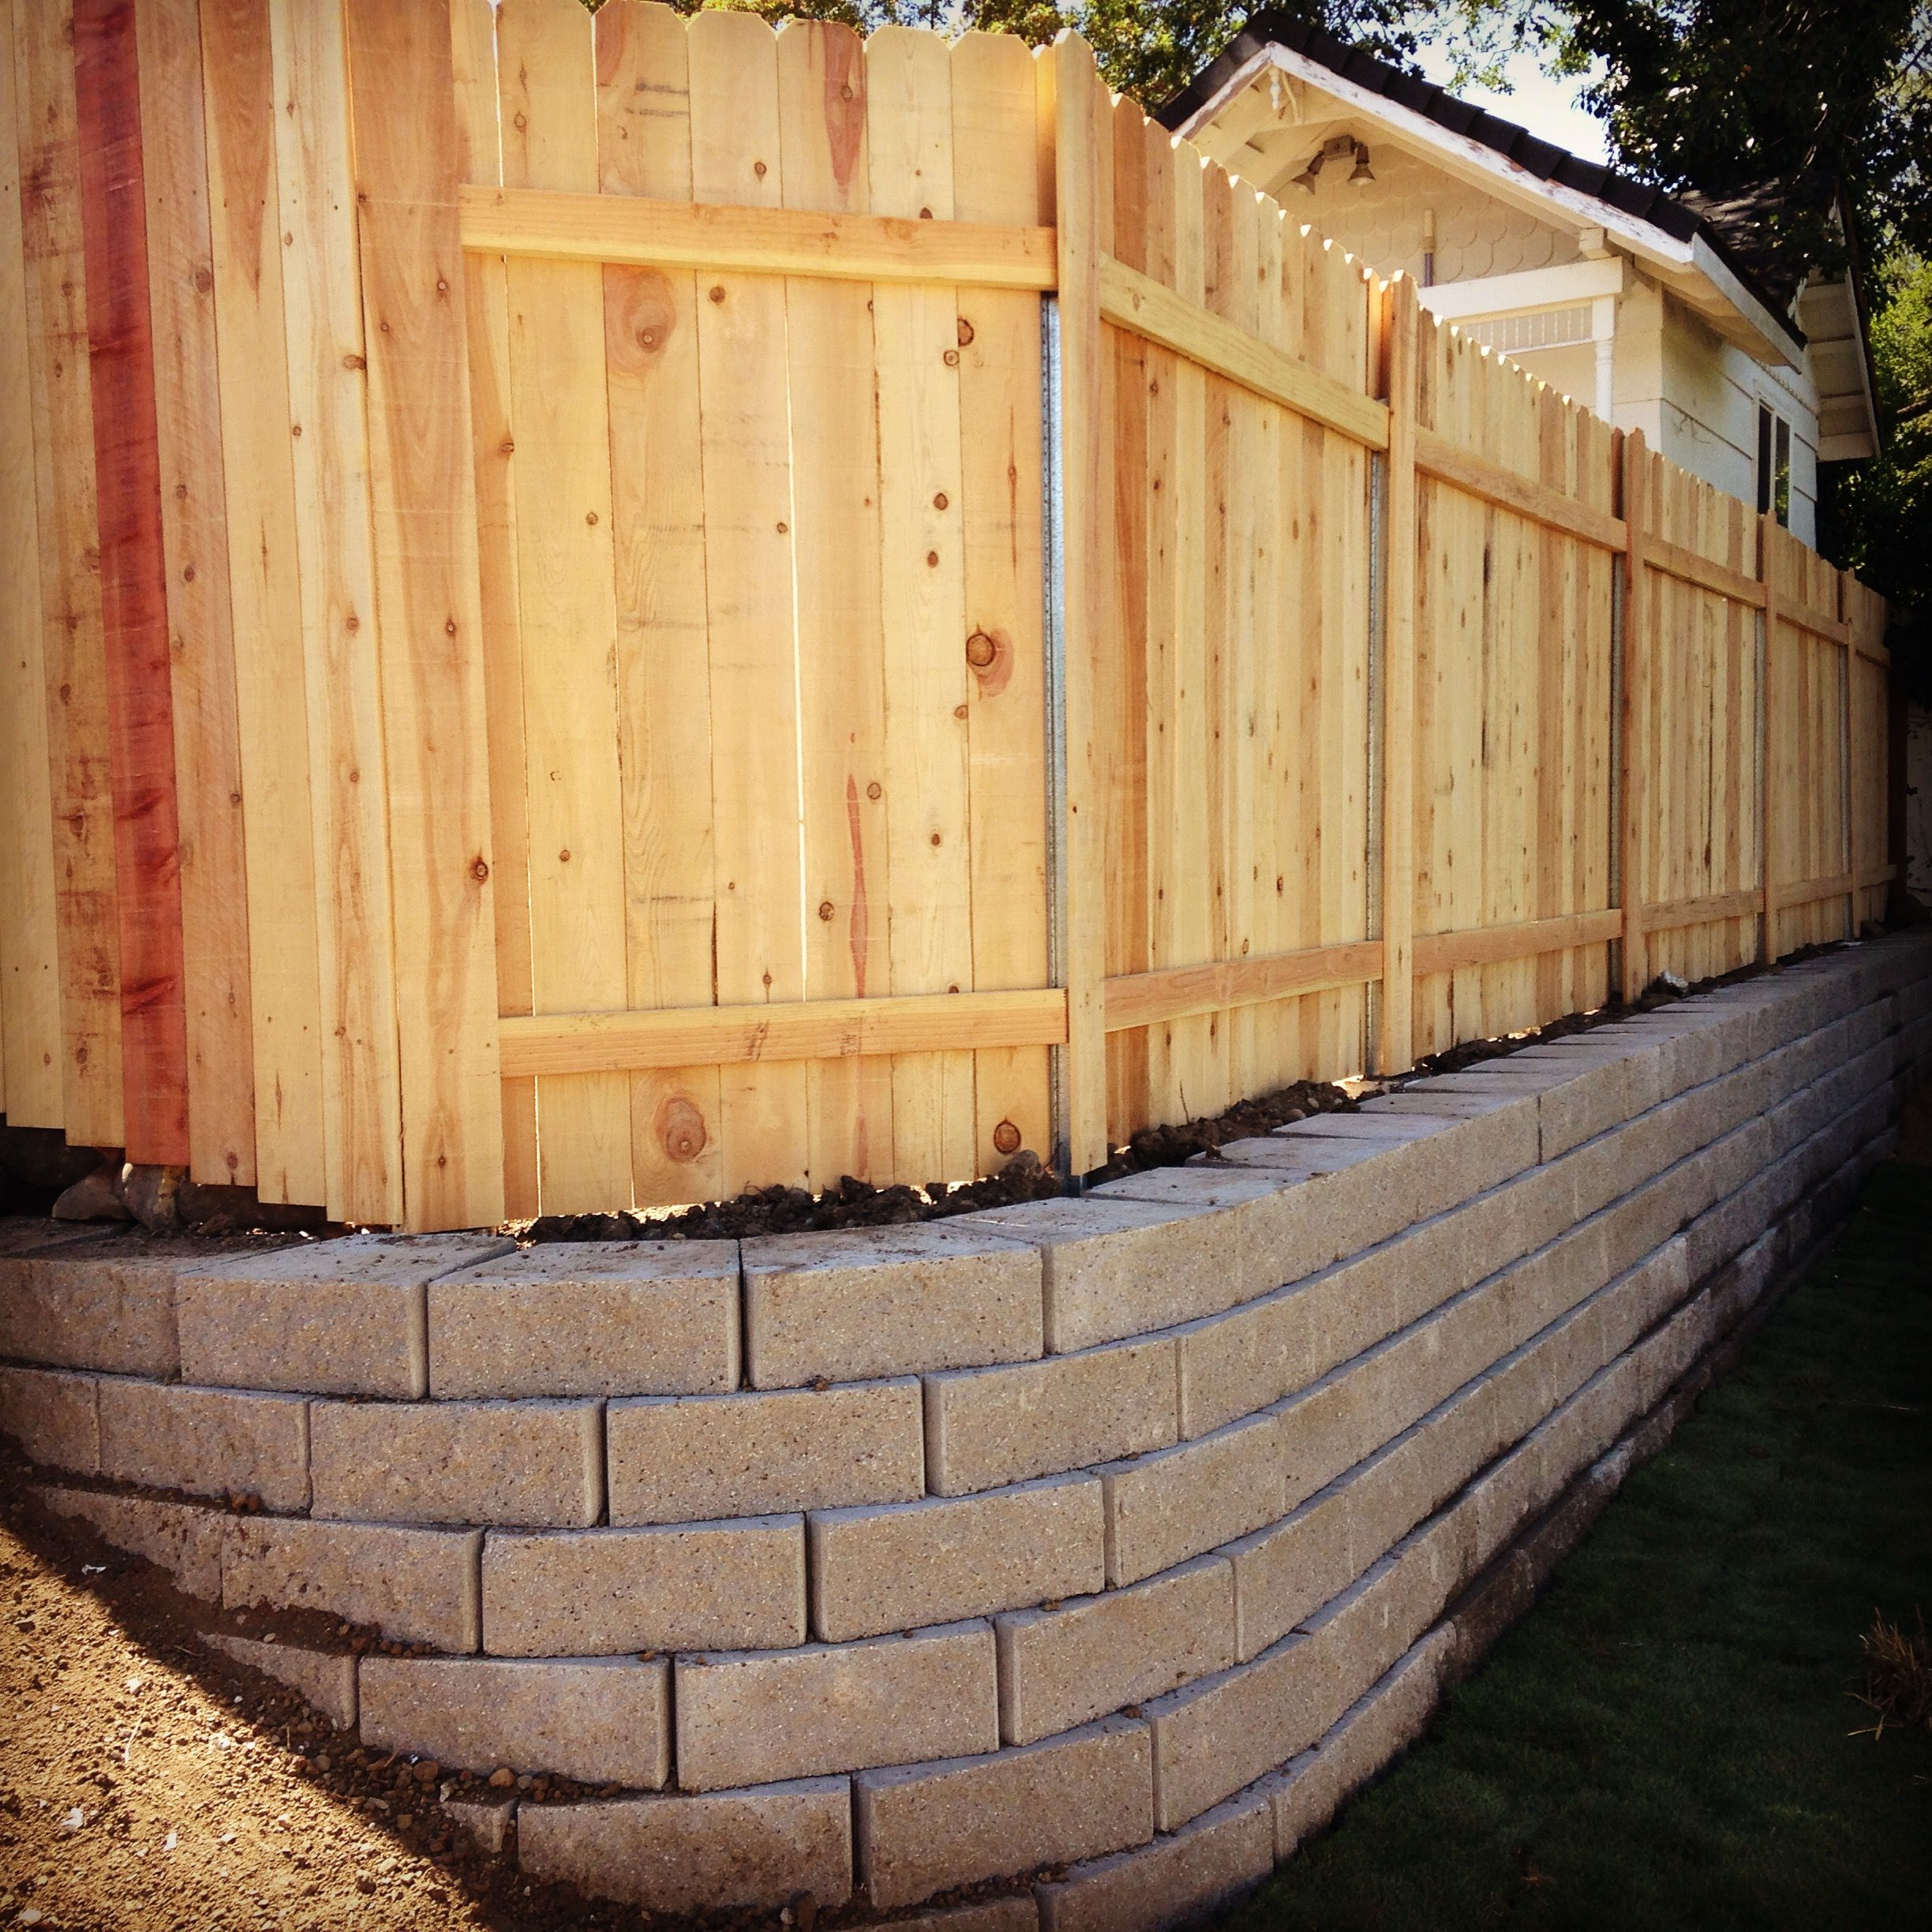 Retaining wall with fence | Backyard living | Pinterest | Medford ...